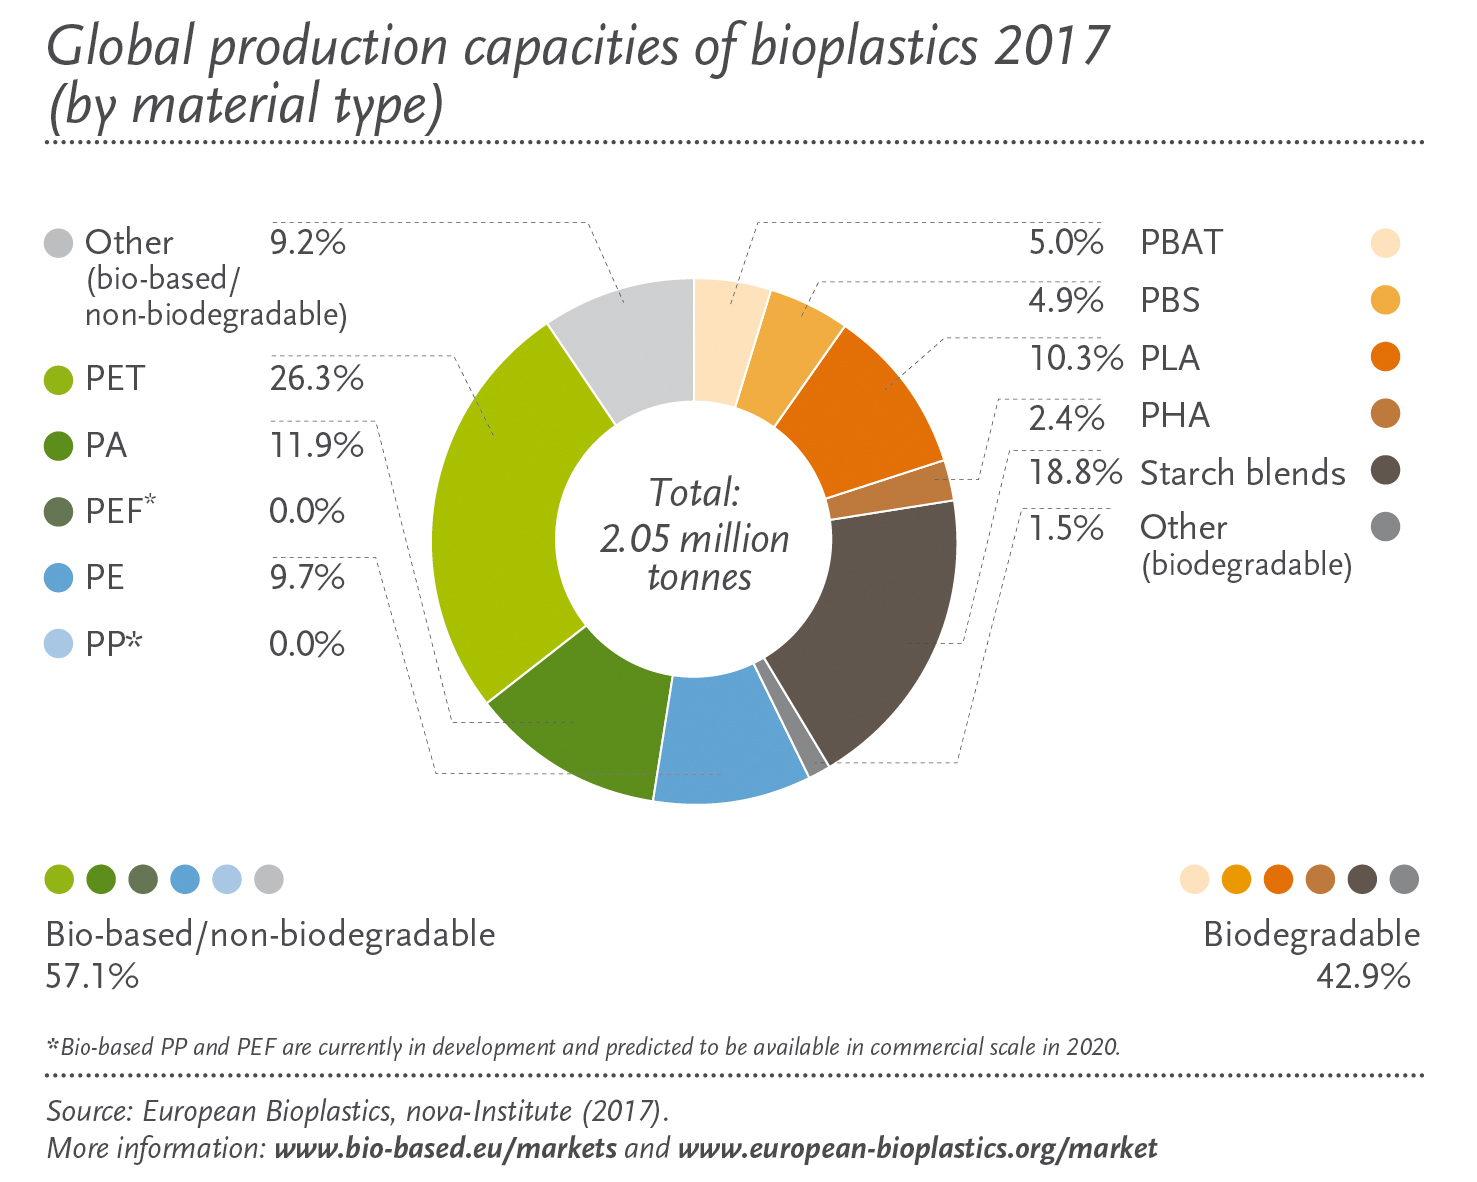 http://www.european-bioplastics.org/wp-content/uploads/2017/11/Global_production_capacity_2017_by_material_en.jpg